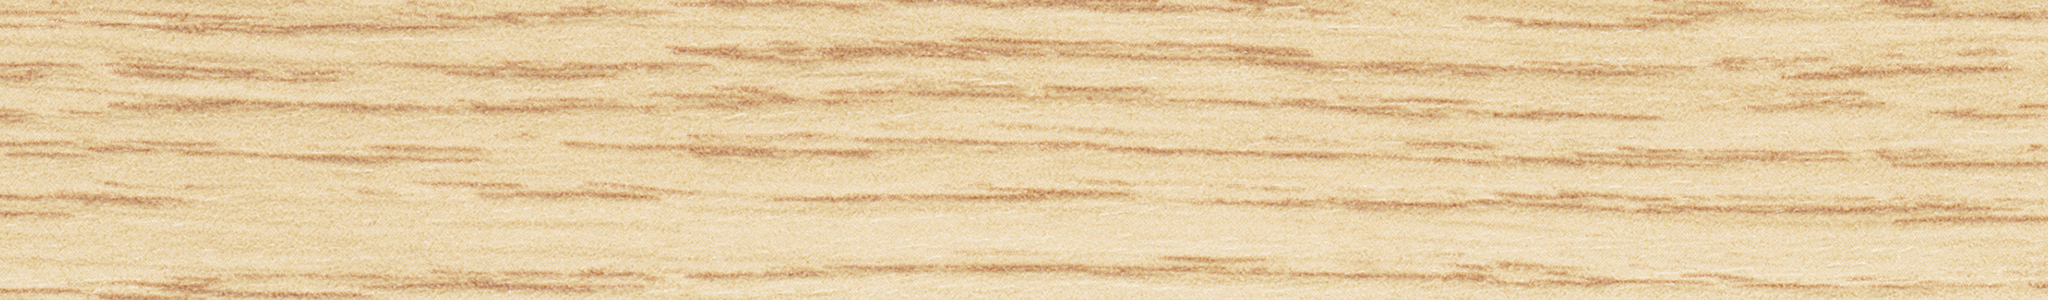 HD 44328 Melamine Edge Natural Oak Pore